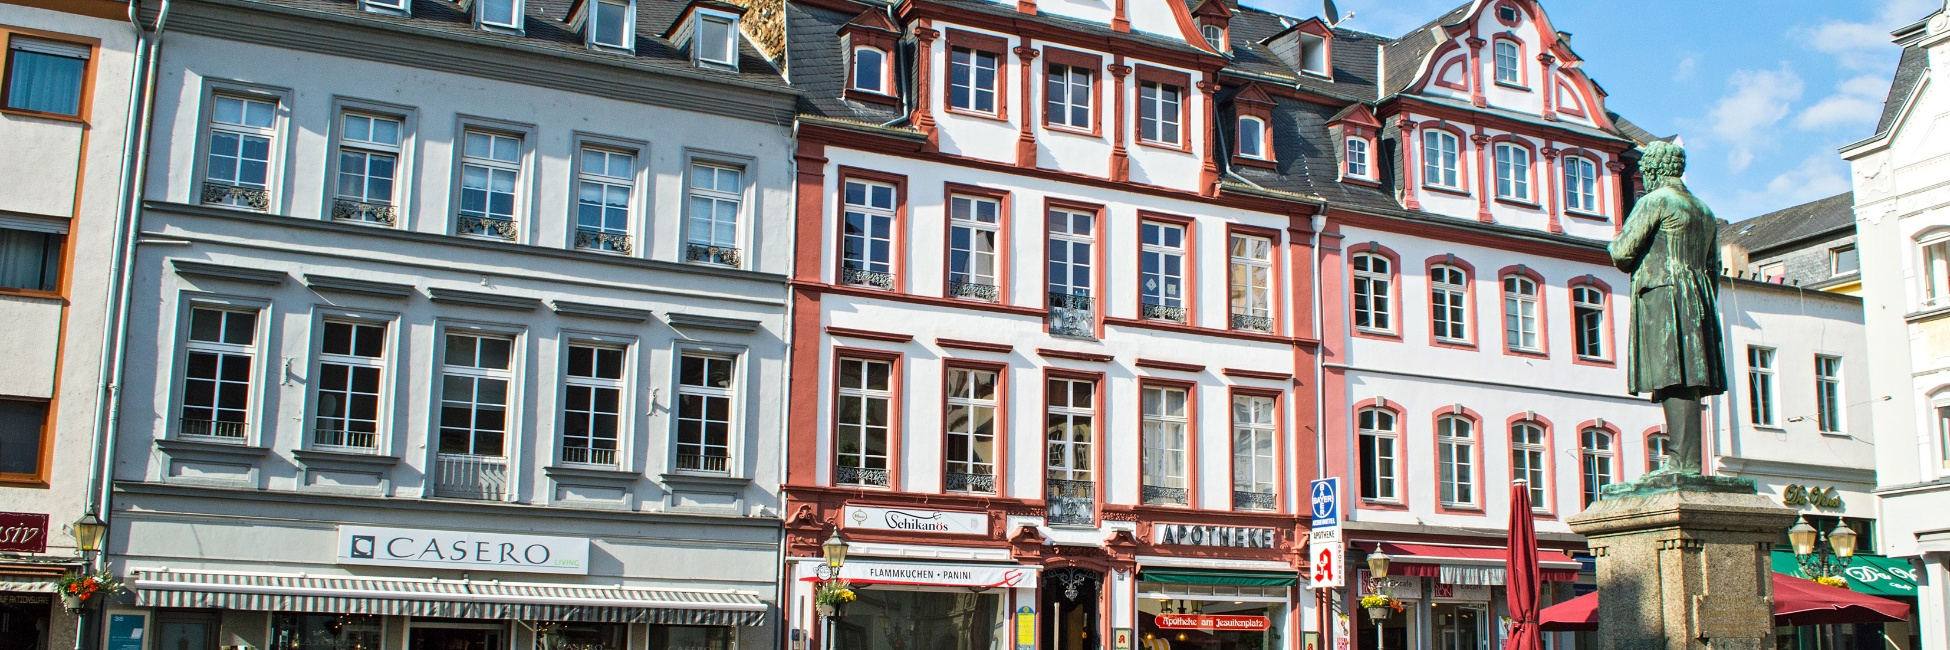 4 German Cities & Towns to Visit on the Rhine ...